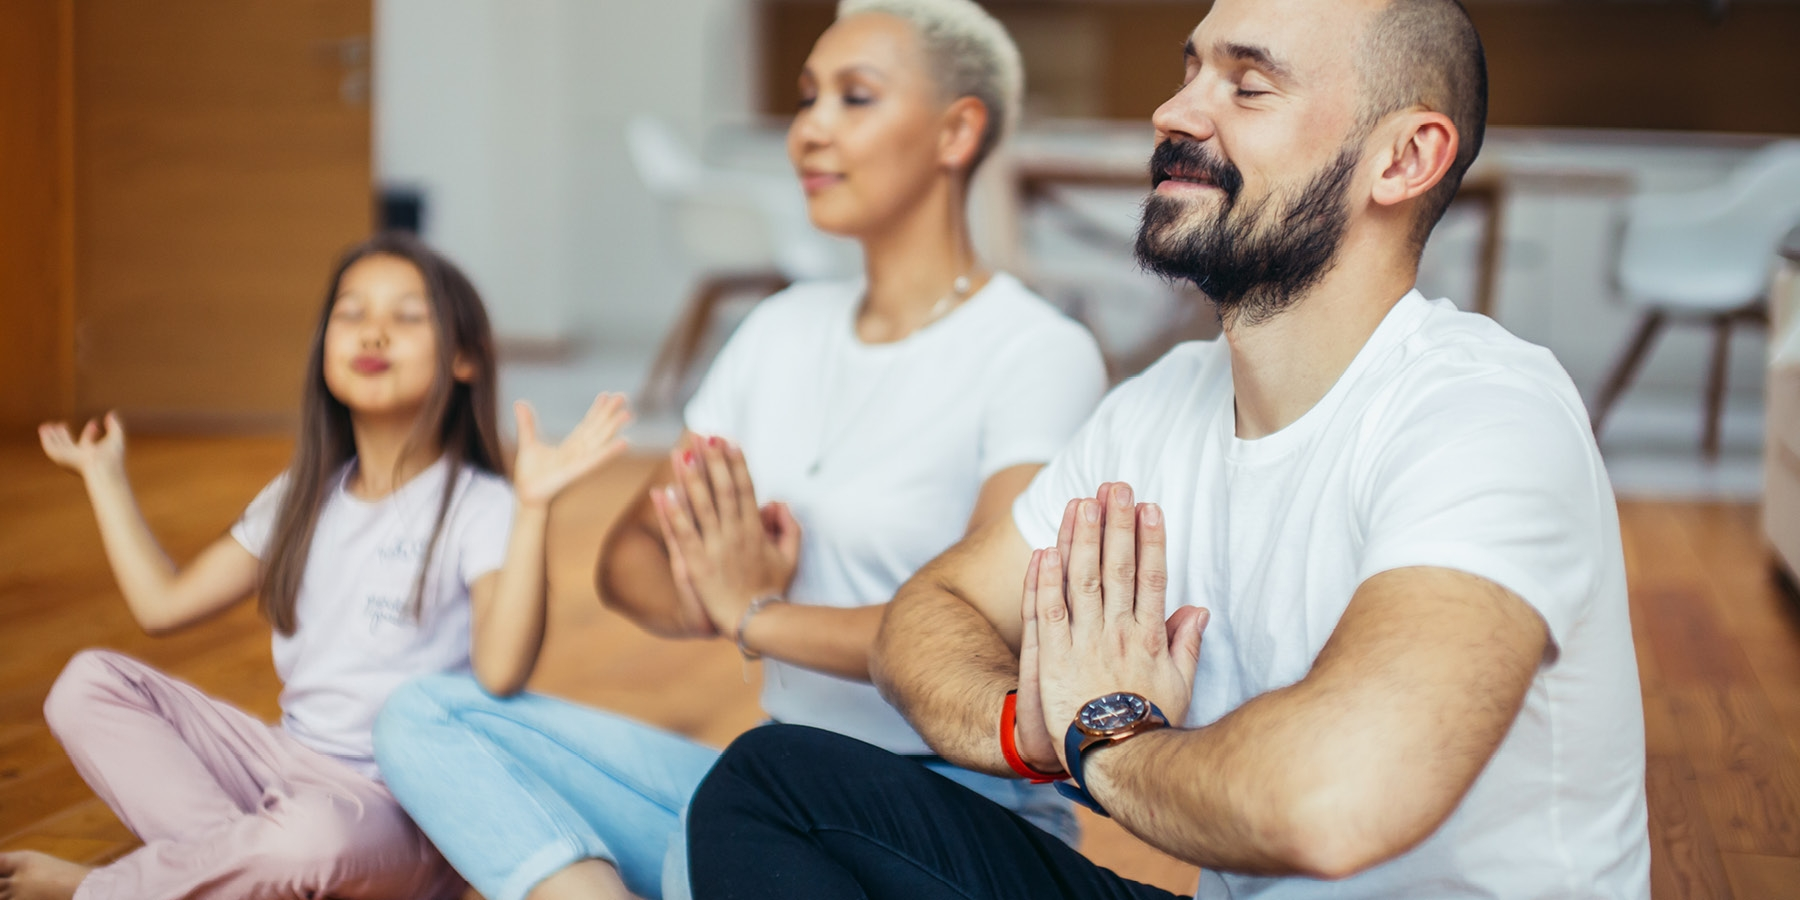 Family practicing meditation together